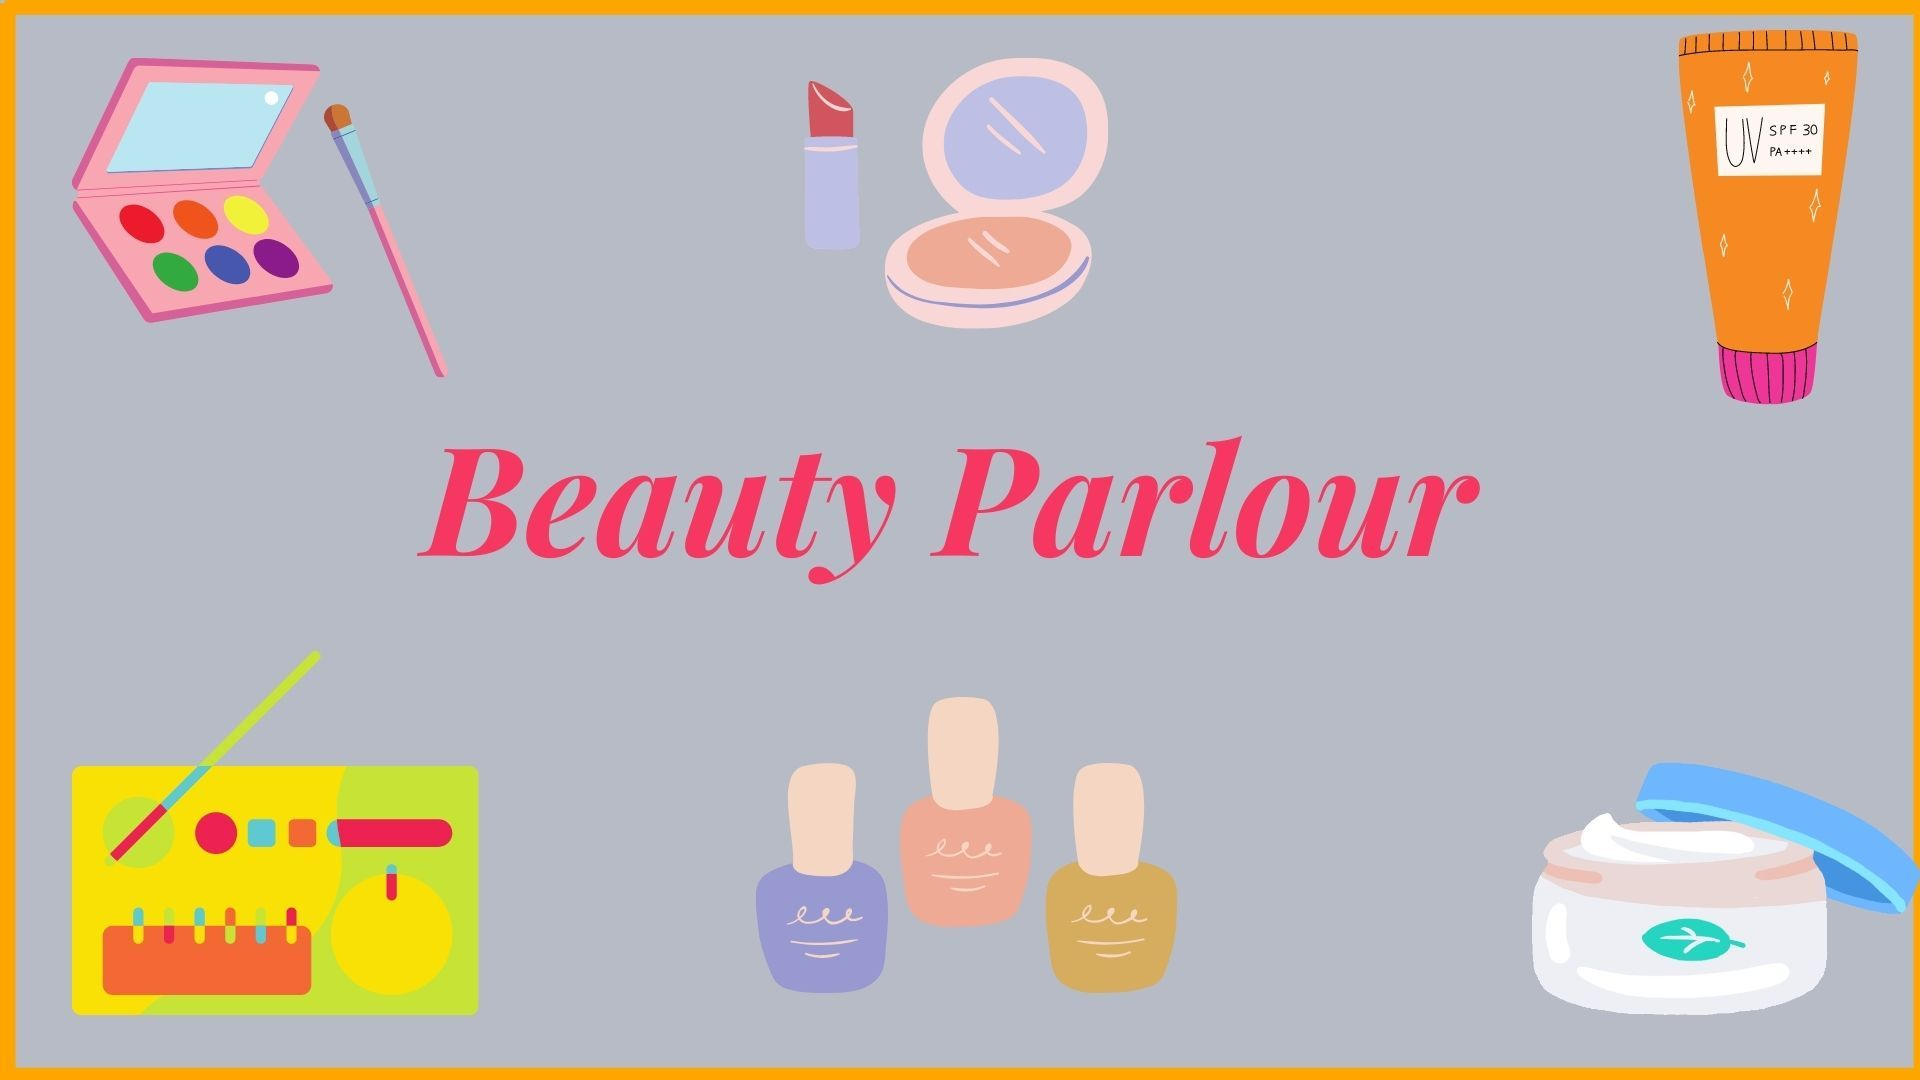 beauty parlours and items